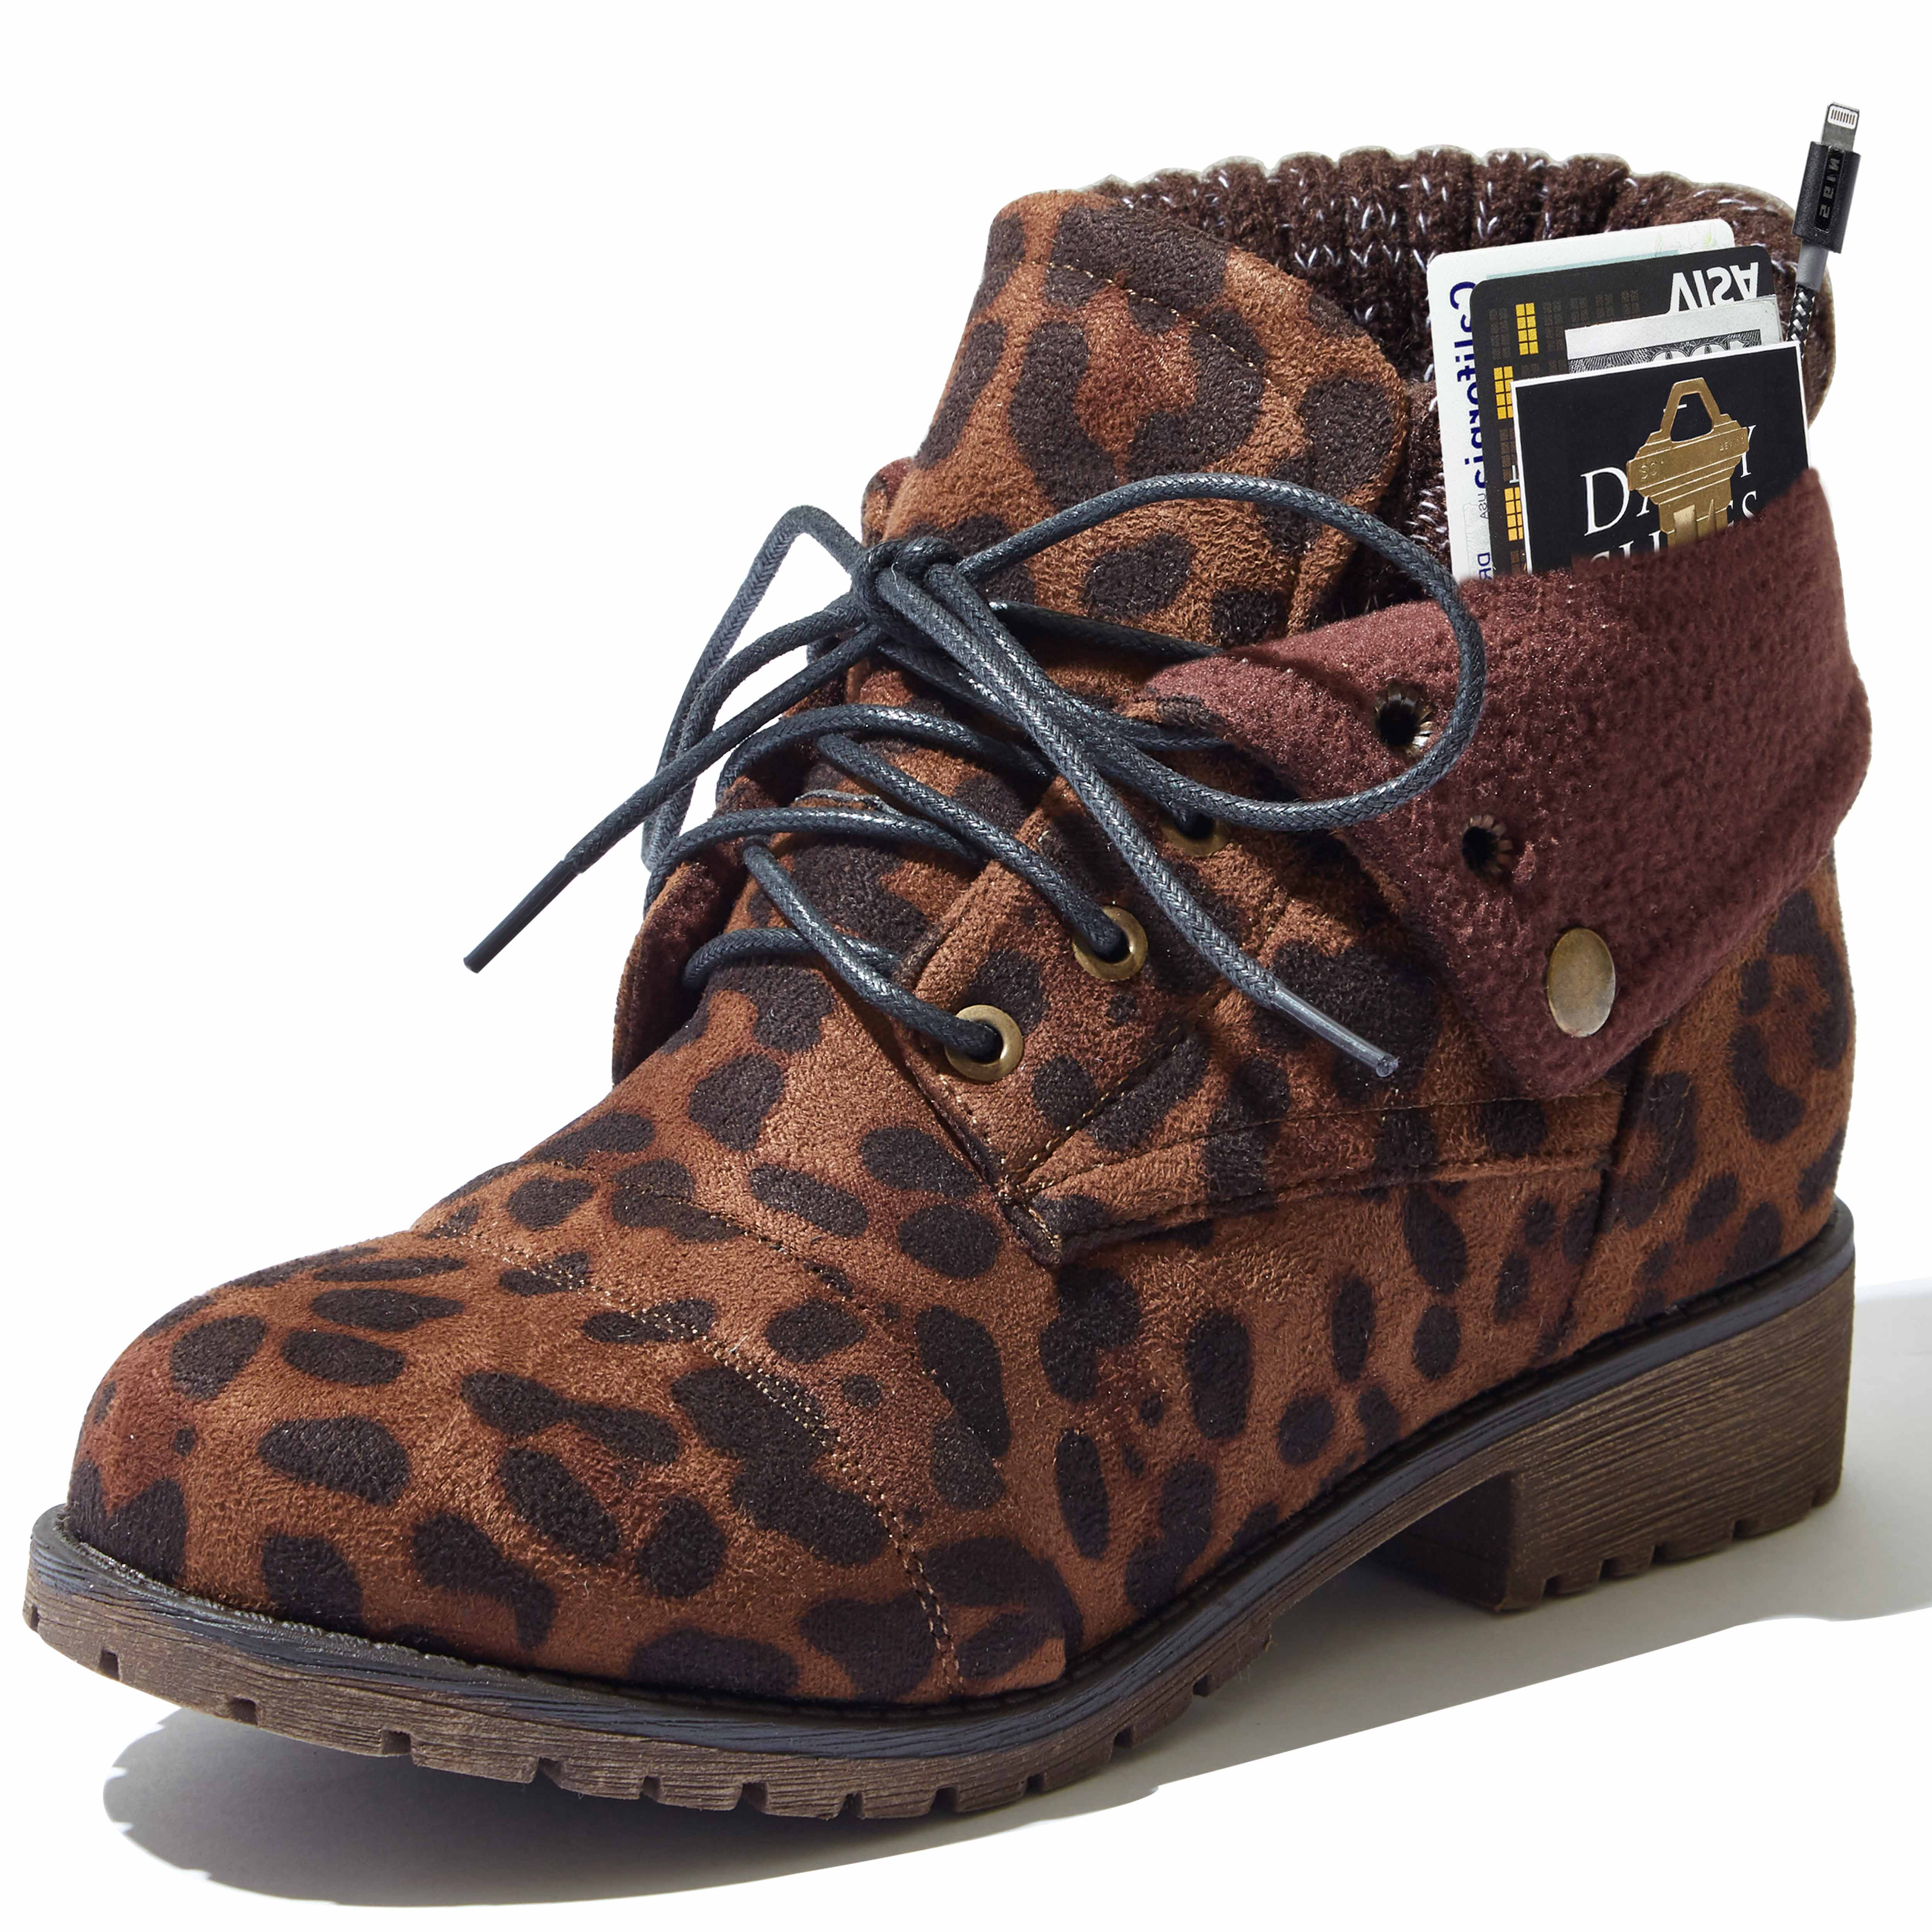 DailyShoes Calf Ankle Lace Up Boots for